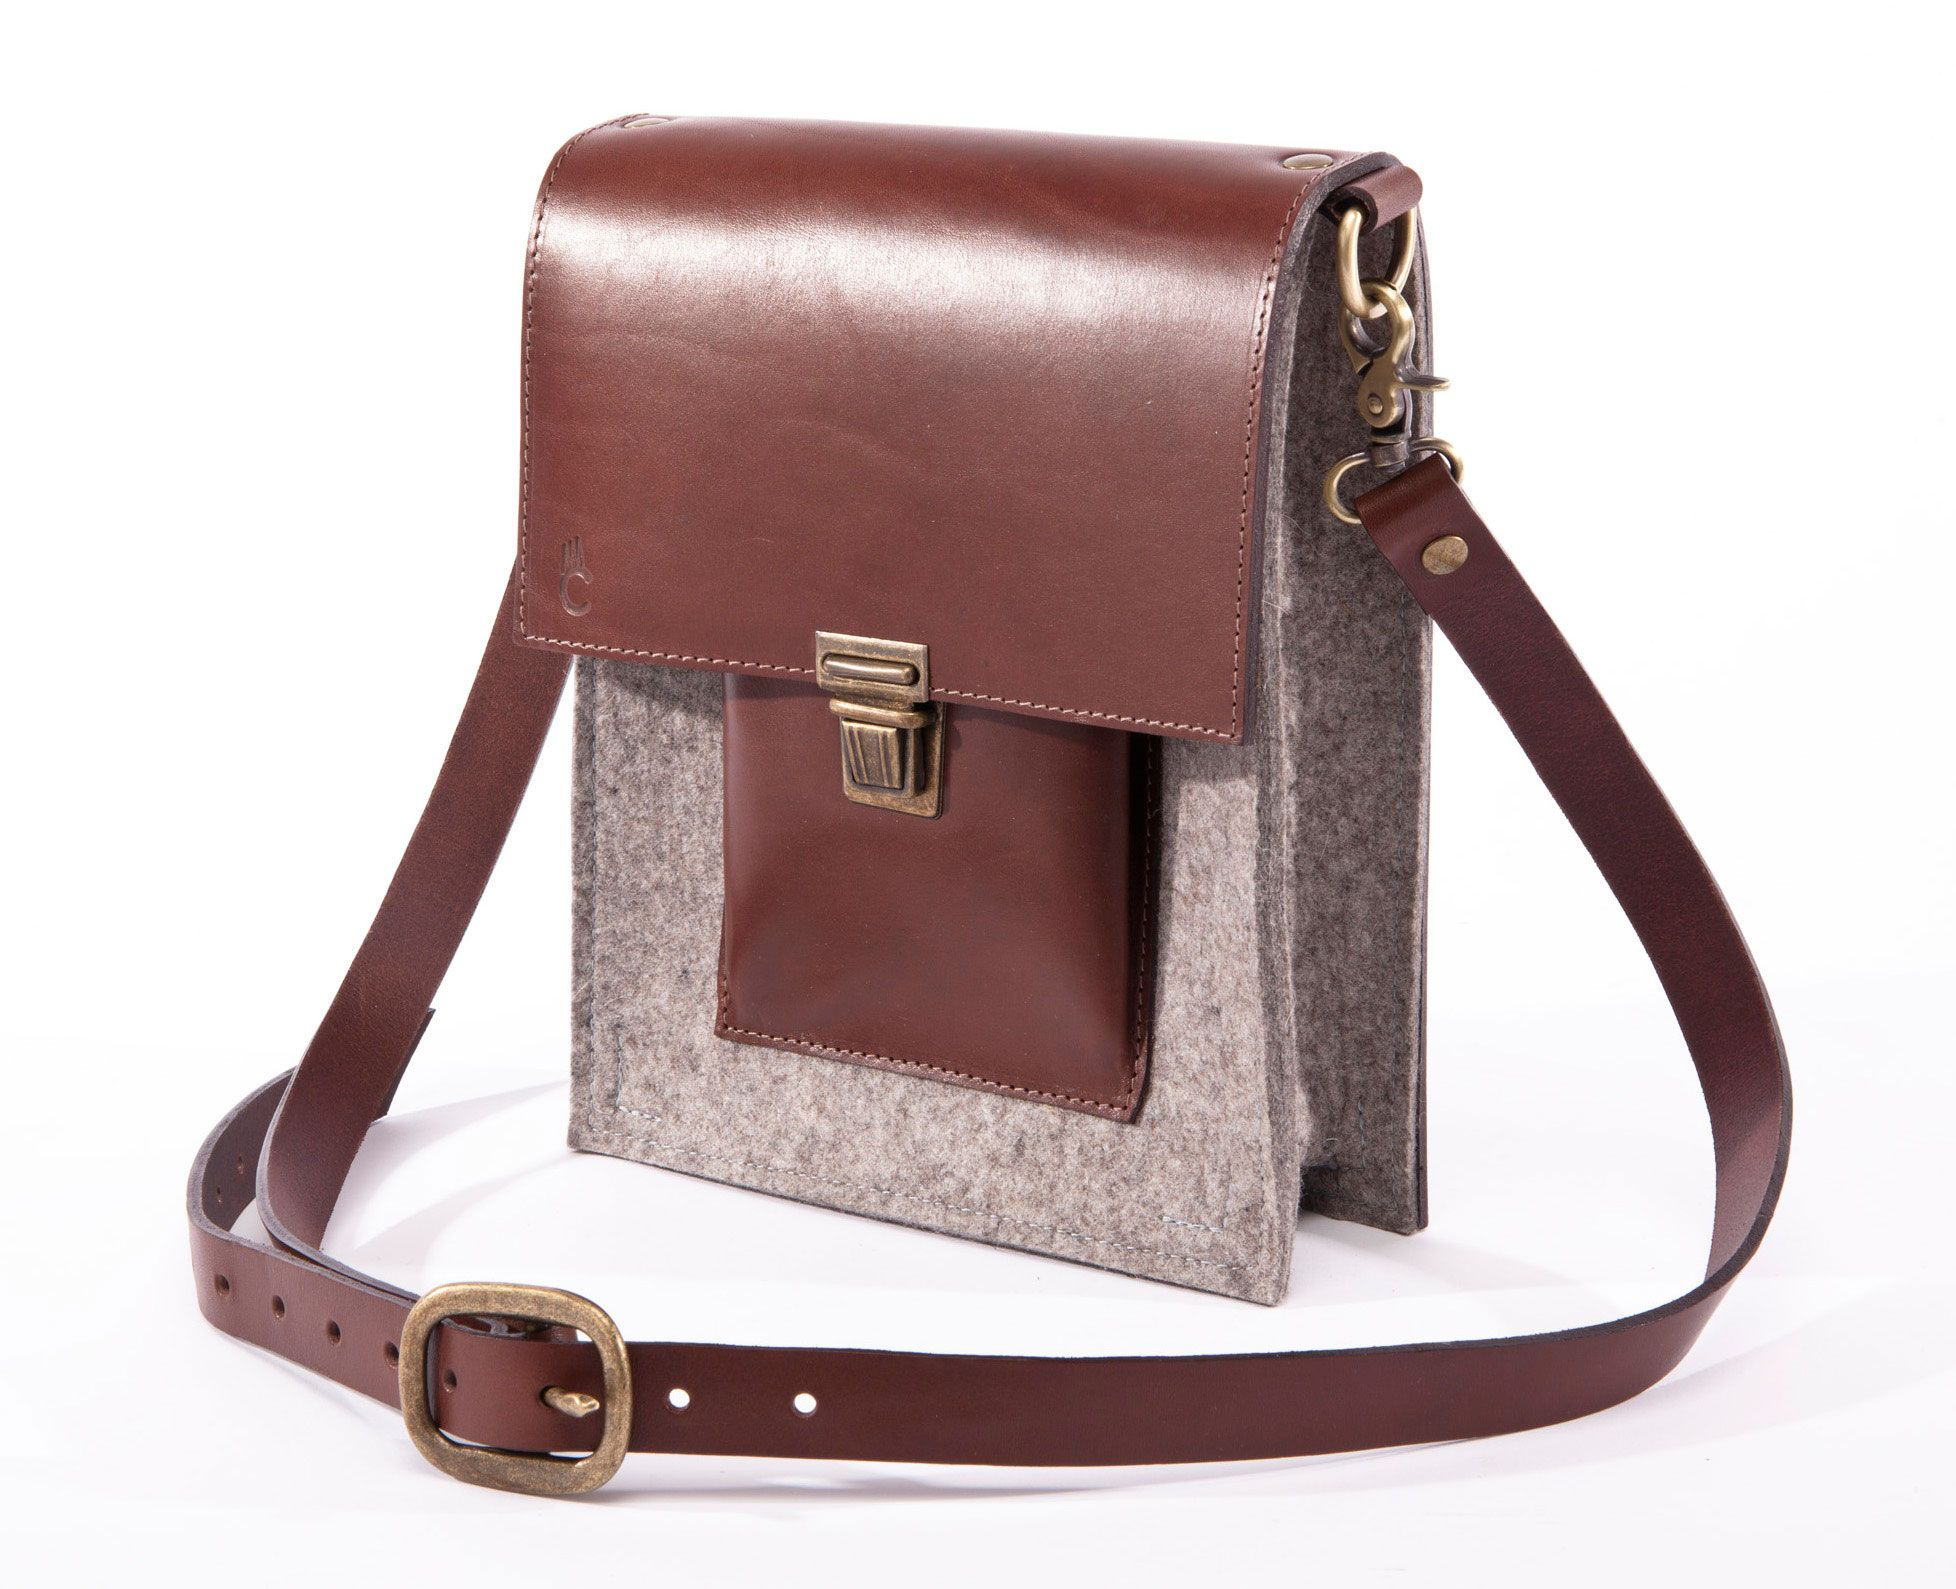 L'explorateur - Felt and Leather - CANTIN - Permanent Collection #fashion #montreal #handmade  #bags